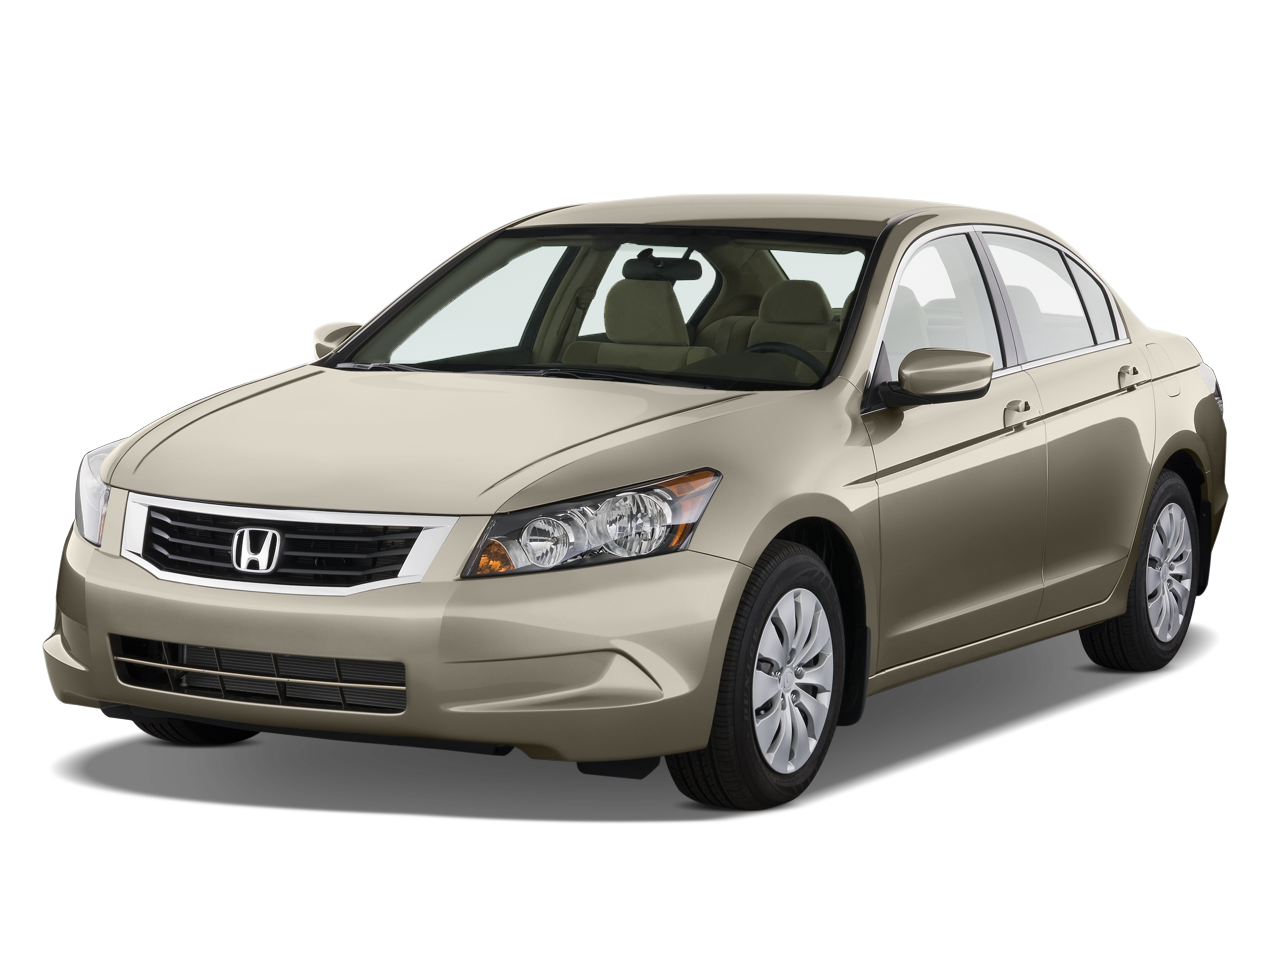 2009 honda accord tourer launches overseas. Black Bedroom Furniture Sets. Home Design Ideas